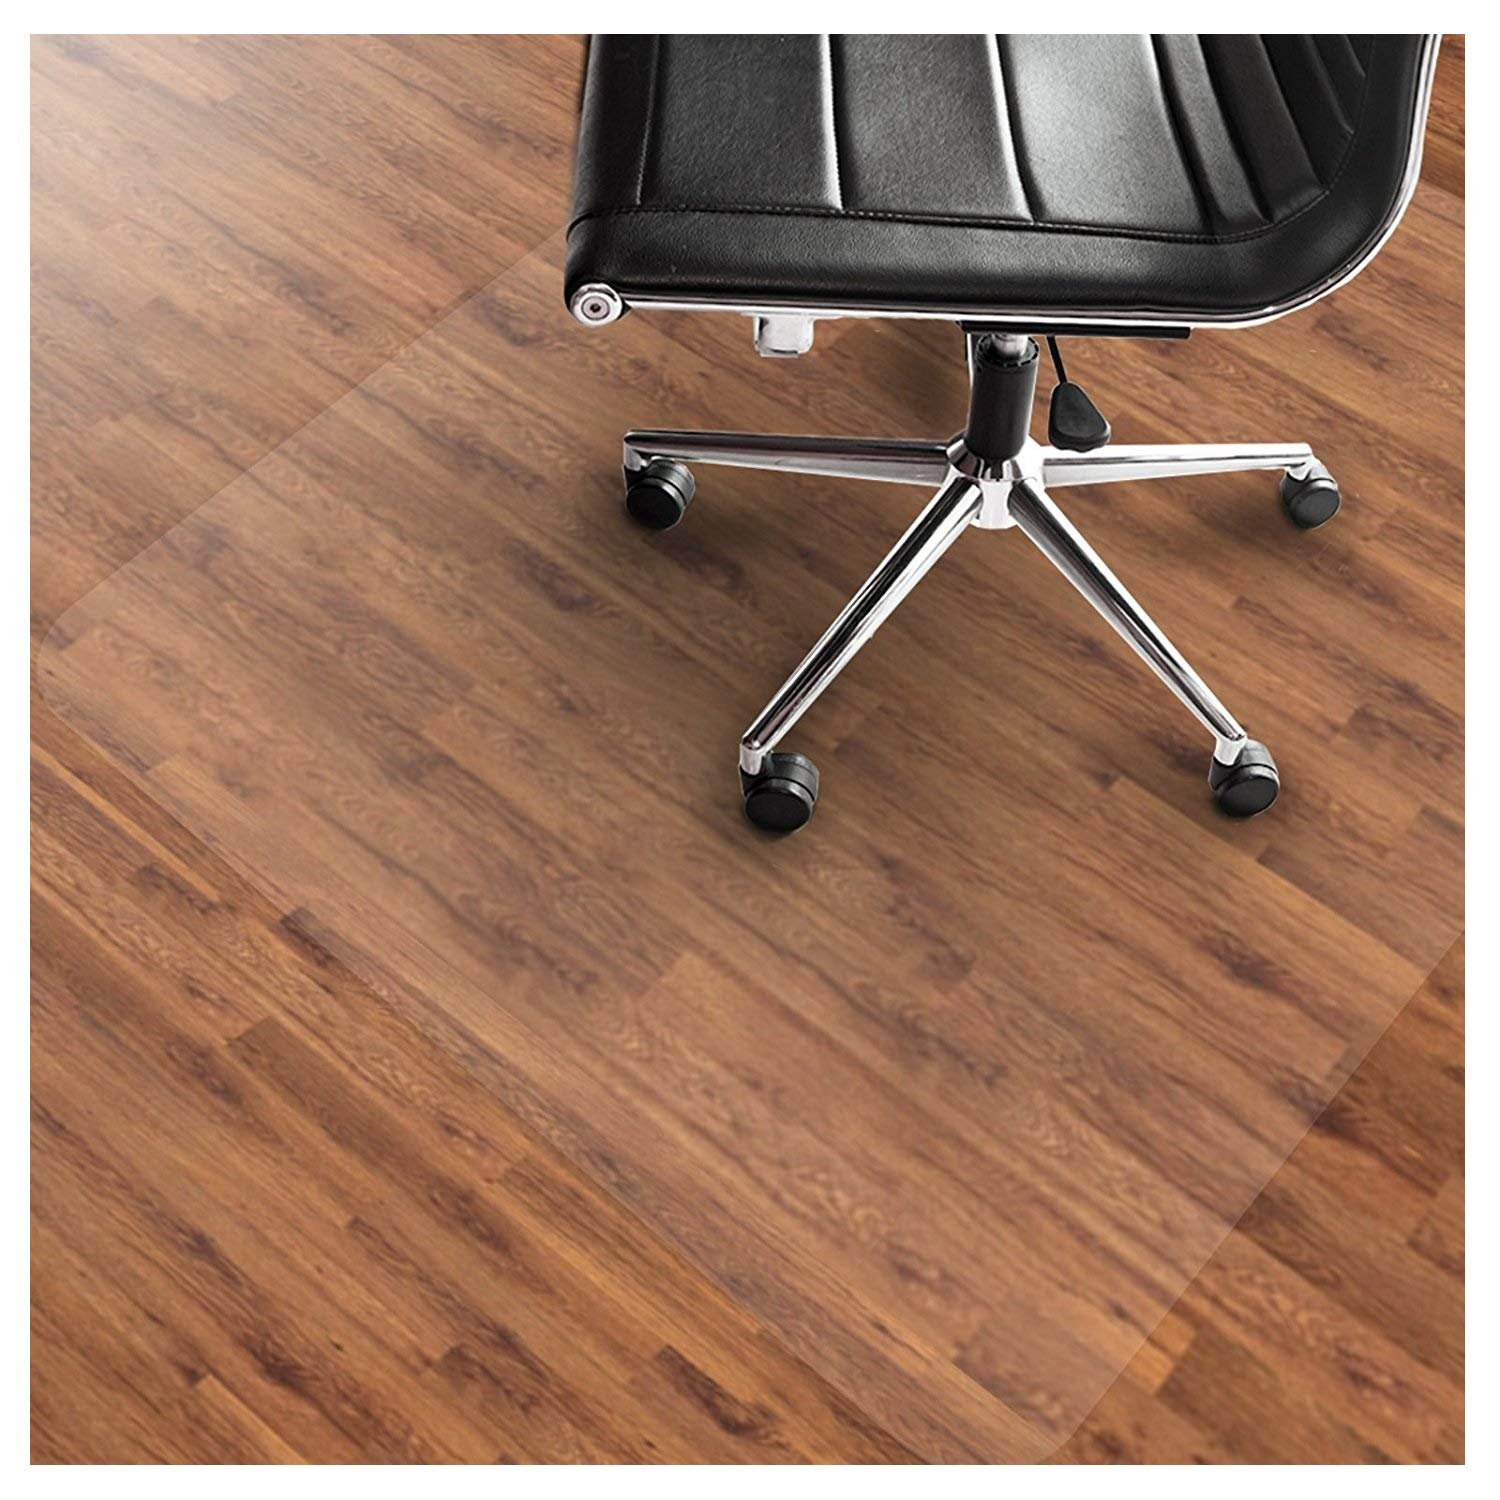 Office Marshal PVC Chair Mat for Hard Floors - 48'' x 120'' | Multiple Sizes Available | Clear, Multi-purpose Floor Protector by Office Marshal